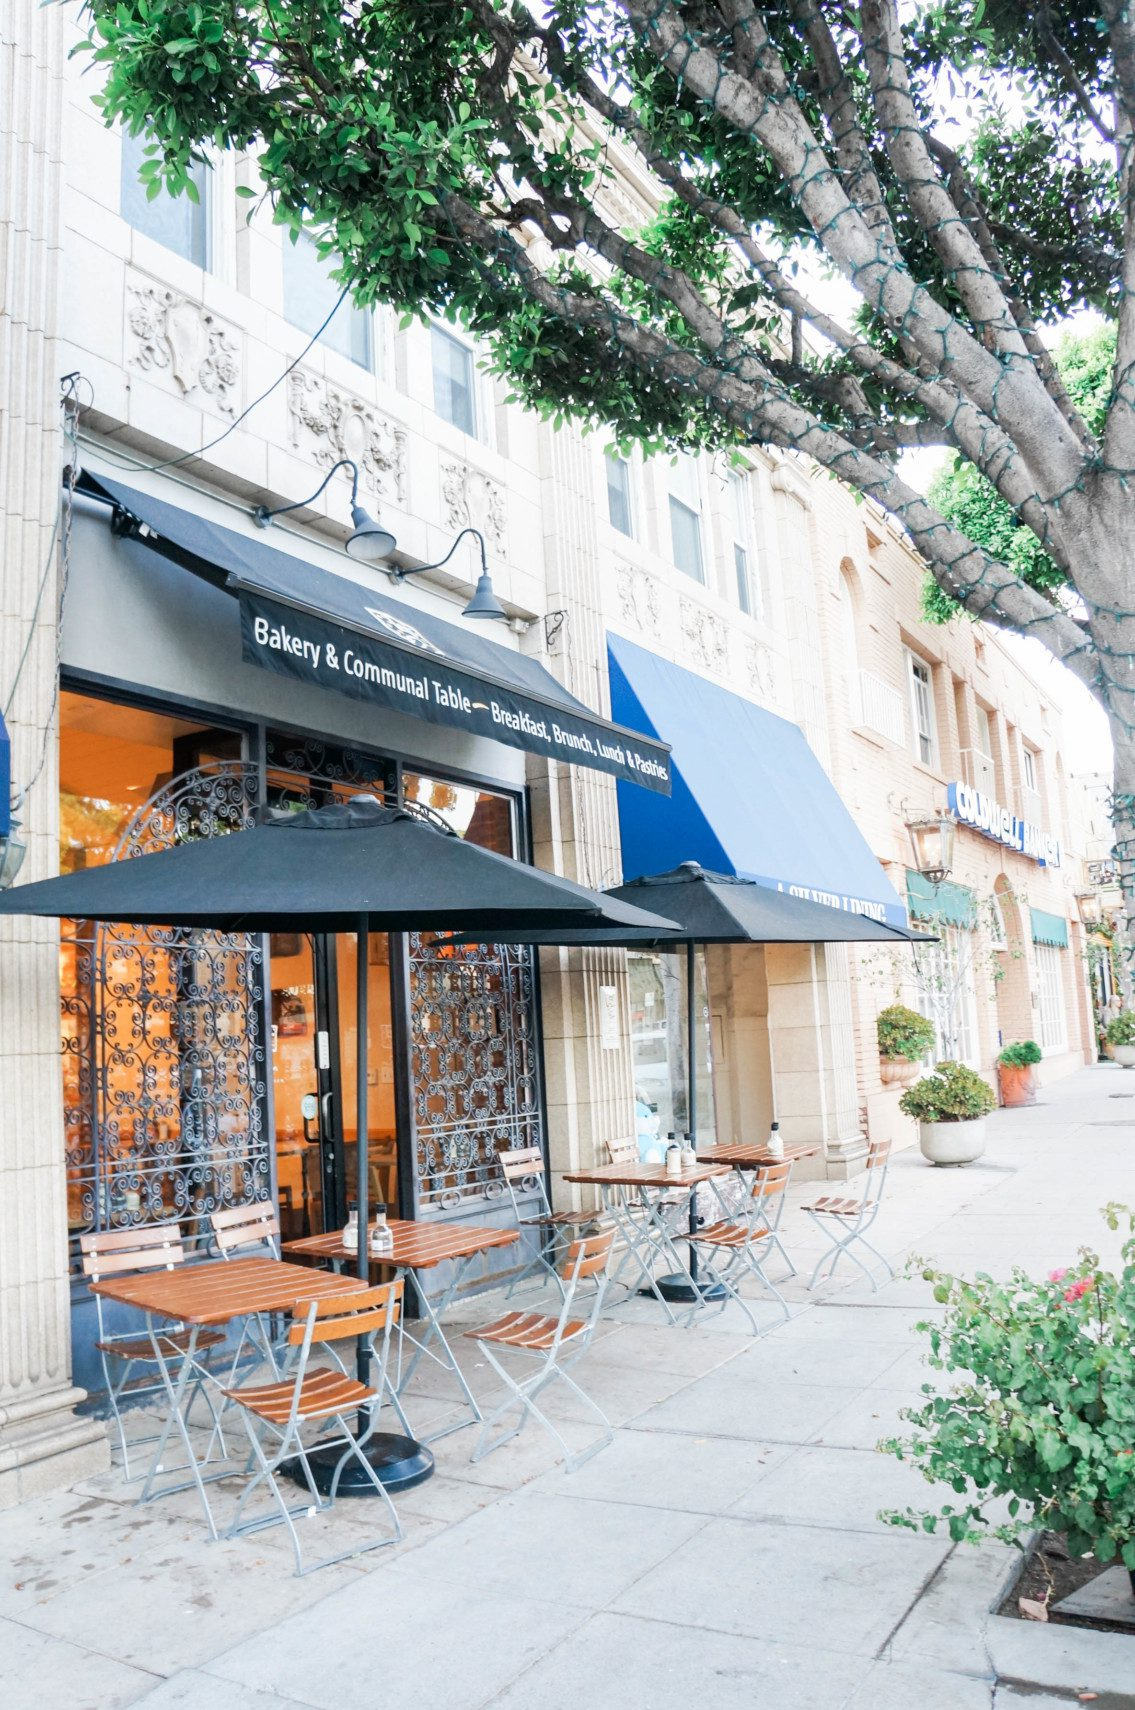 Where to eat, play, and shop in Larchmont Village, a quaint tree-lined street near the Hancock Park neighborhood of Los Angeles.